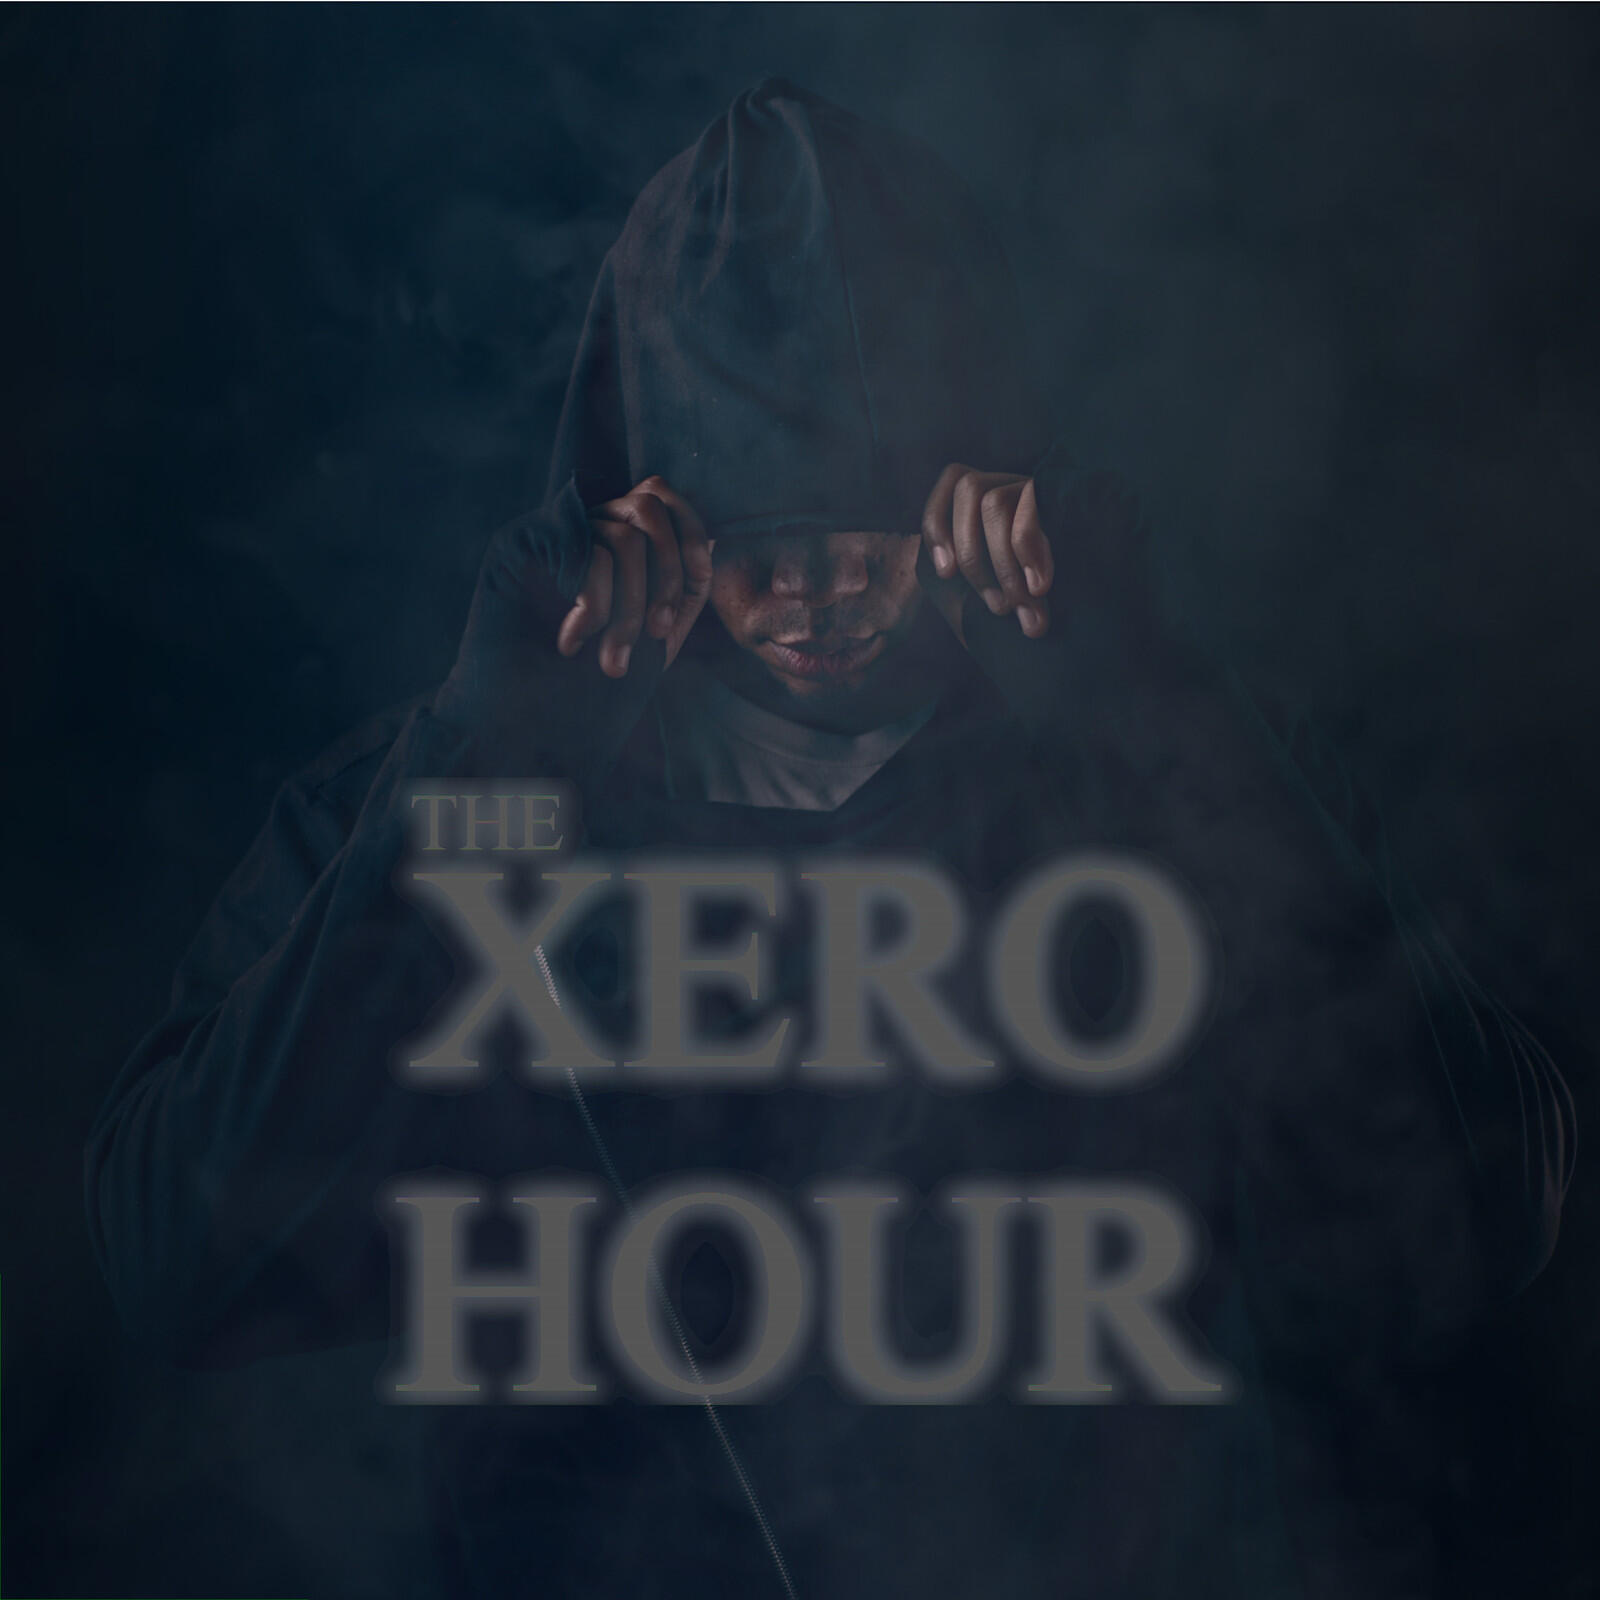 51: Xero Hour Podcast 51 - Christian Conspiracy Theories